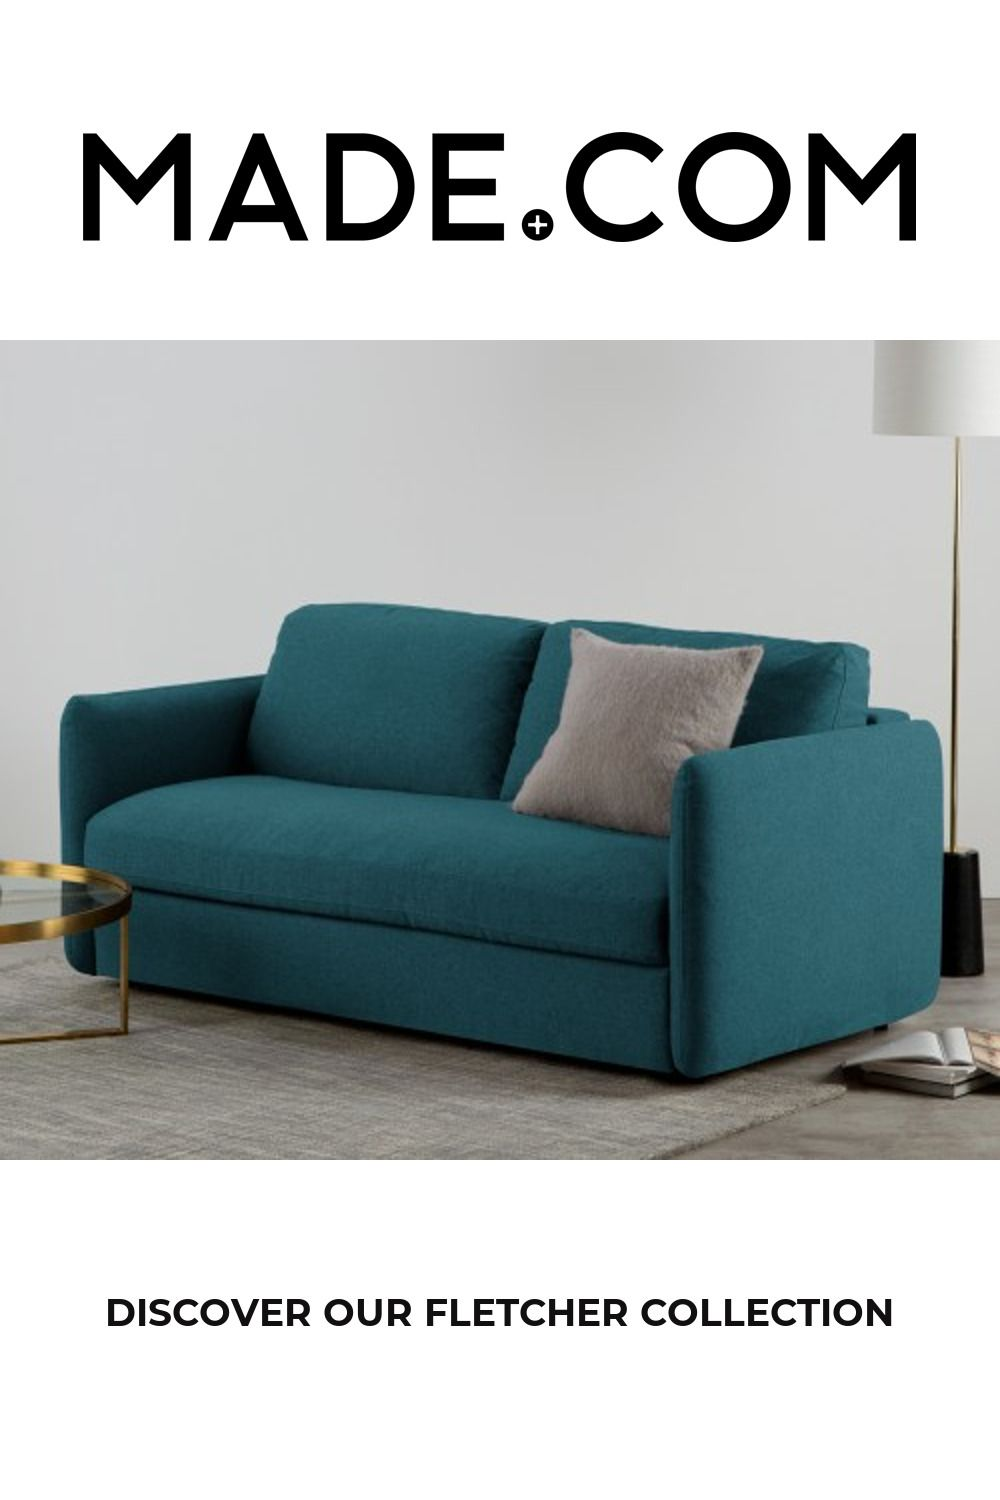 Fletcher 3 Seater Sofabed with Pocket Sprung Mattress, Mineral Blue